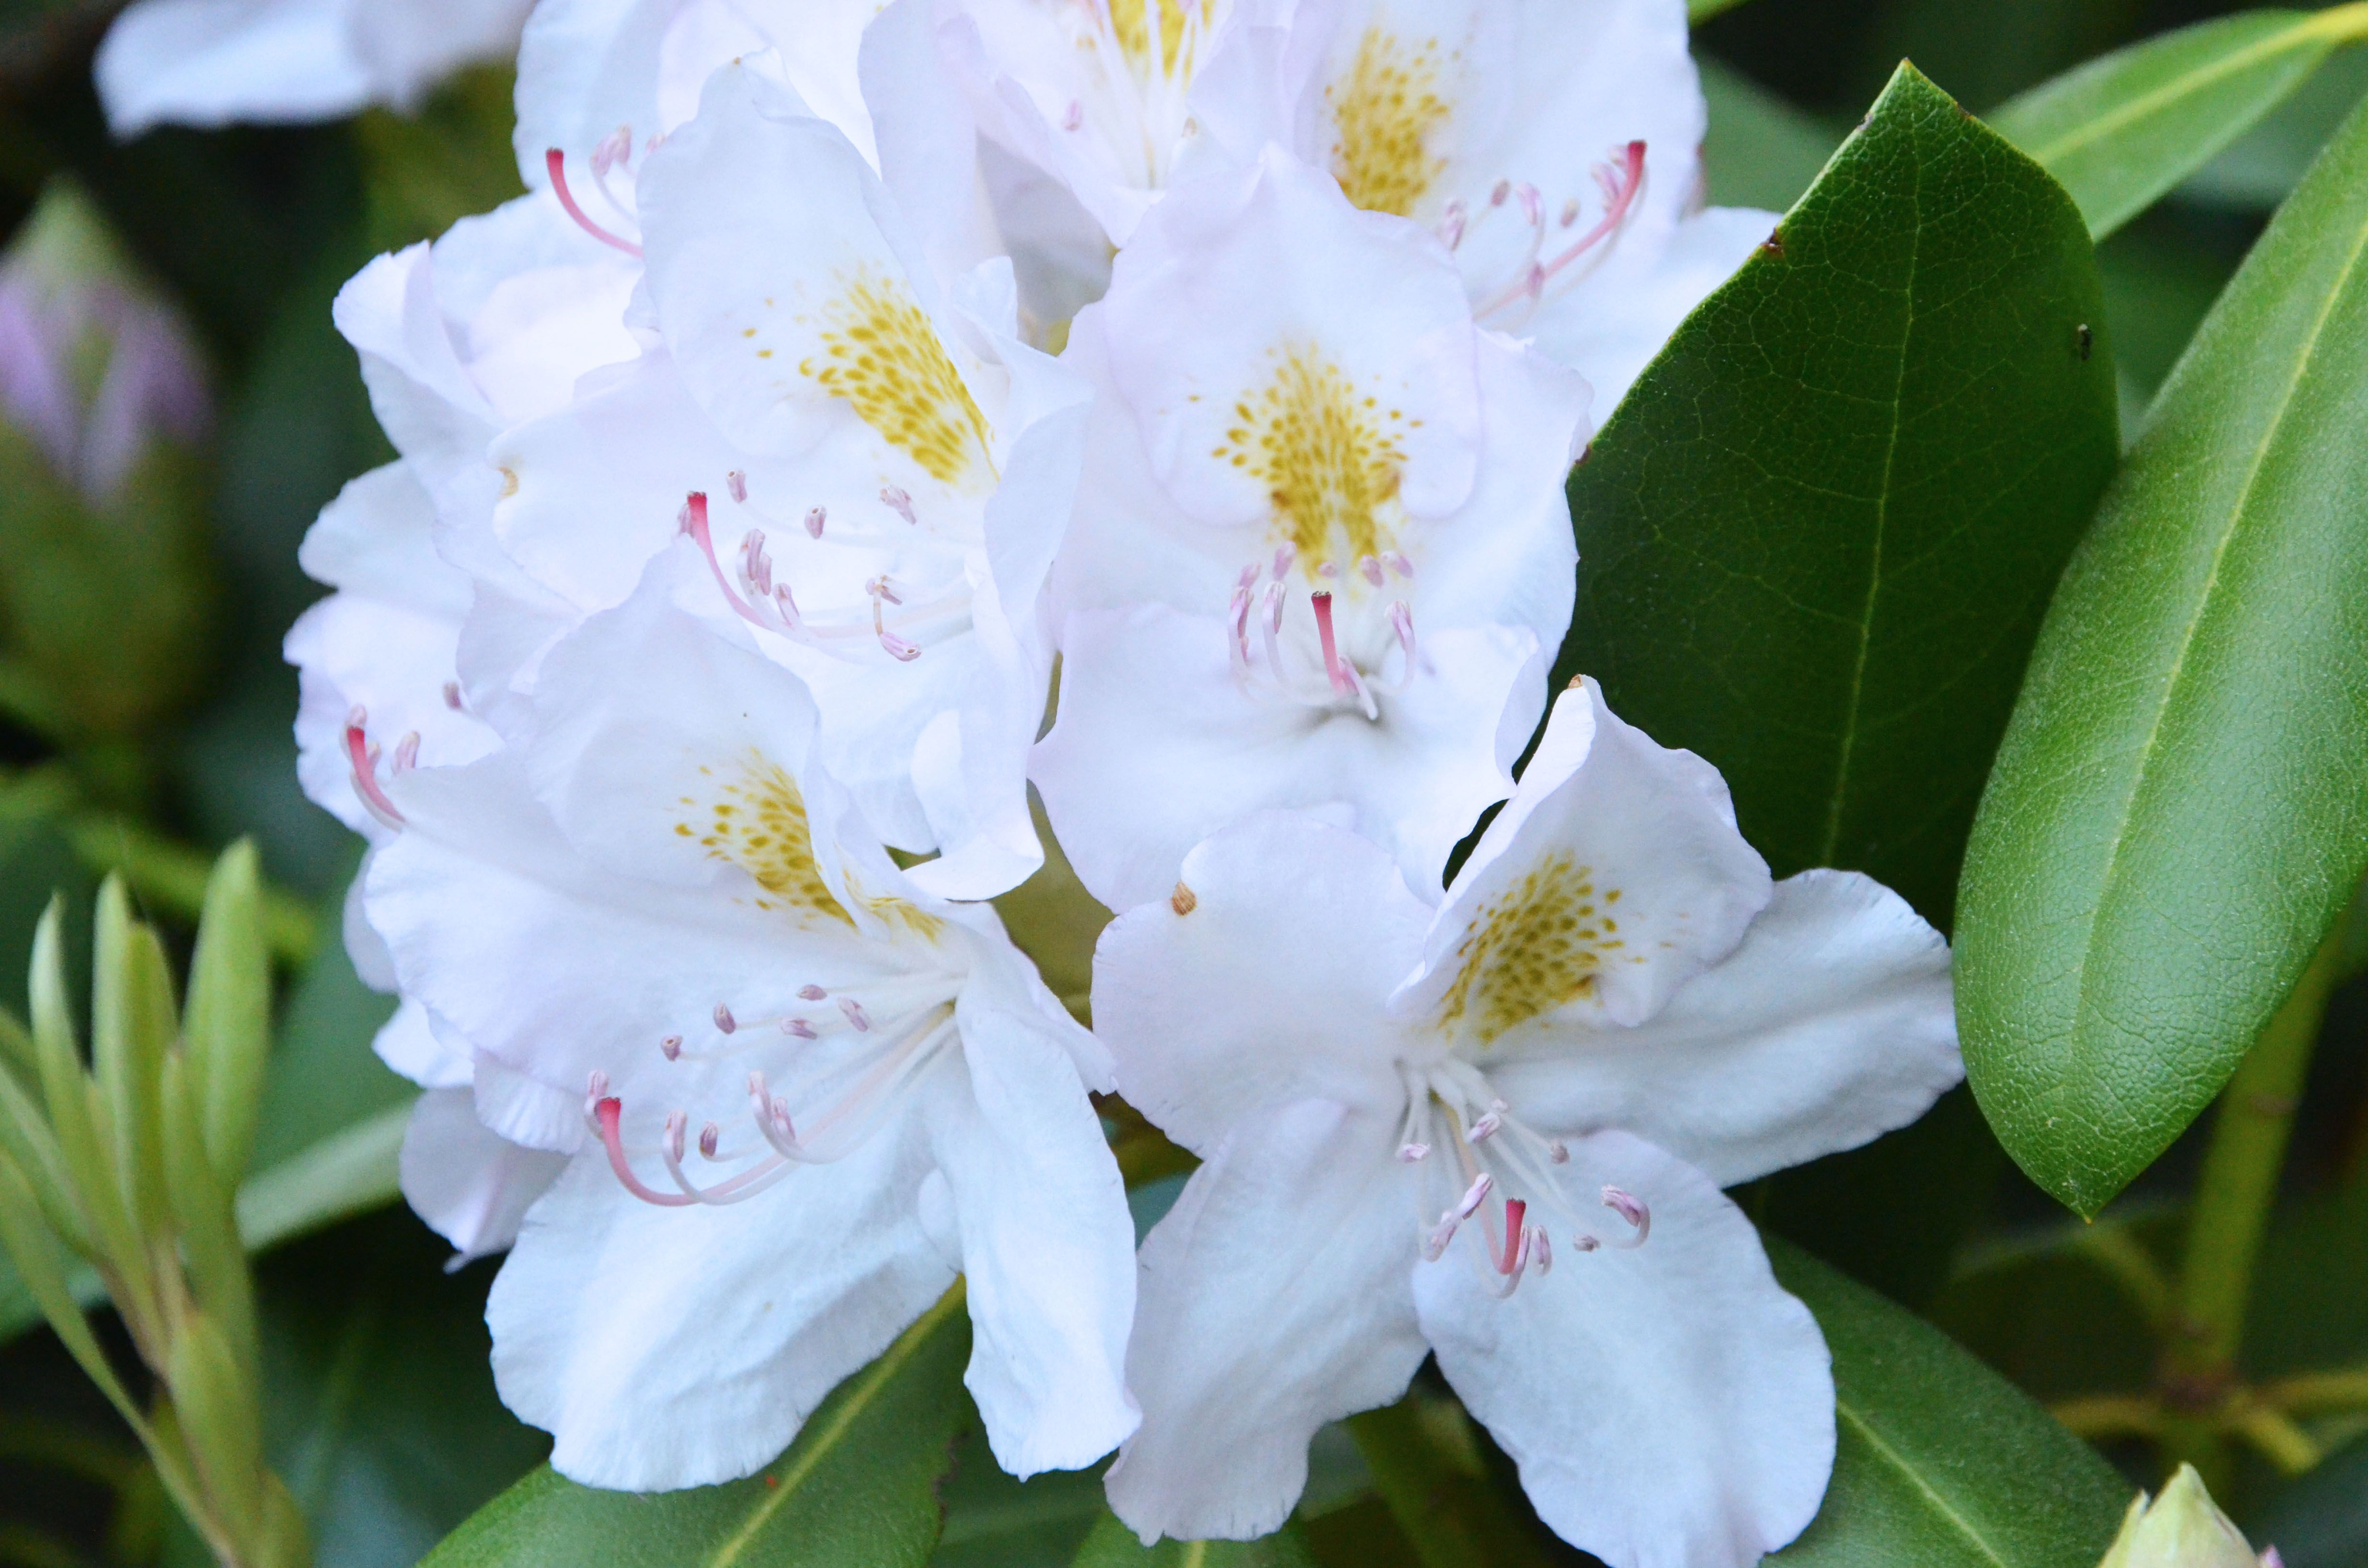 Blooming shrubs take root with dennis 39 7 dees for How to care for rhododendrons after blooming